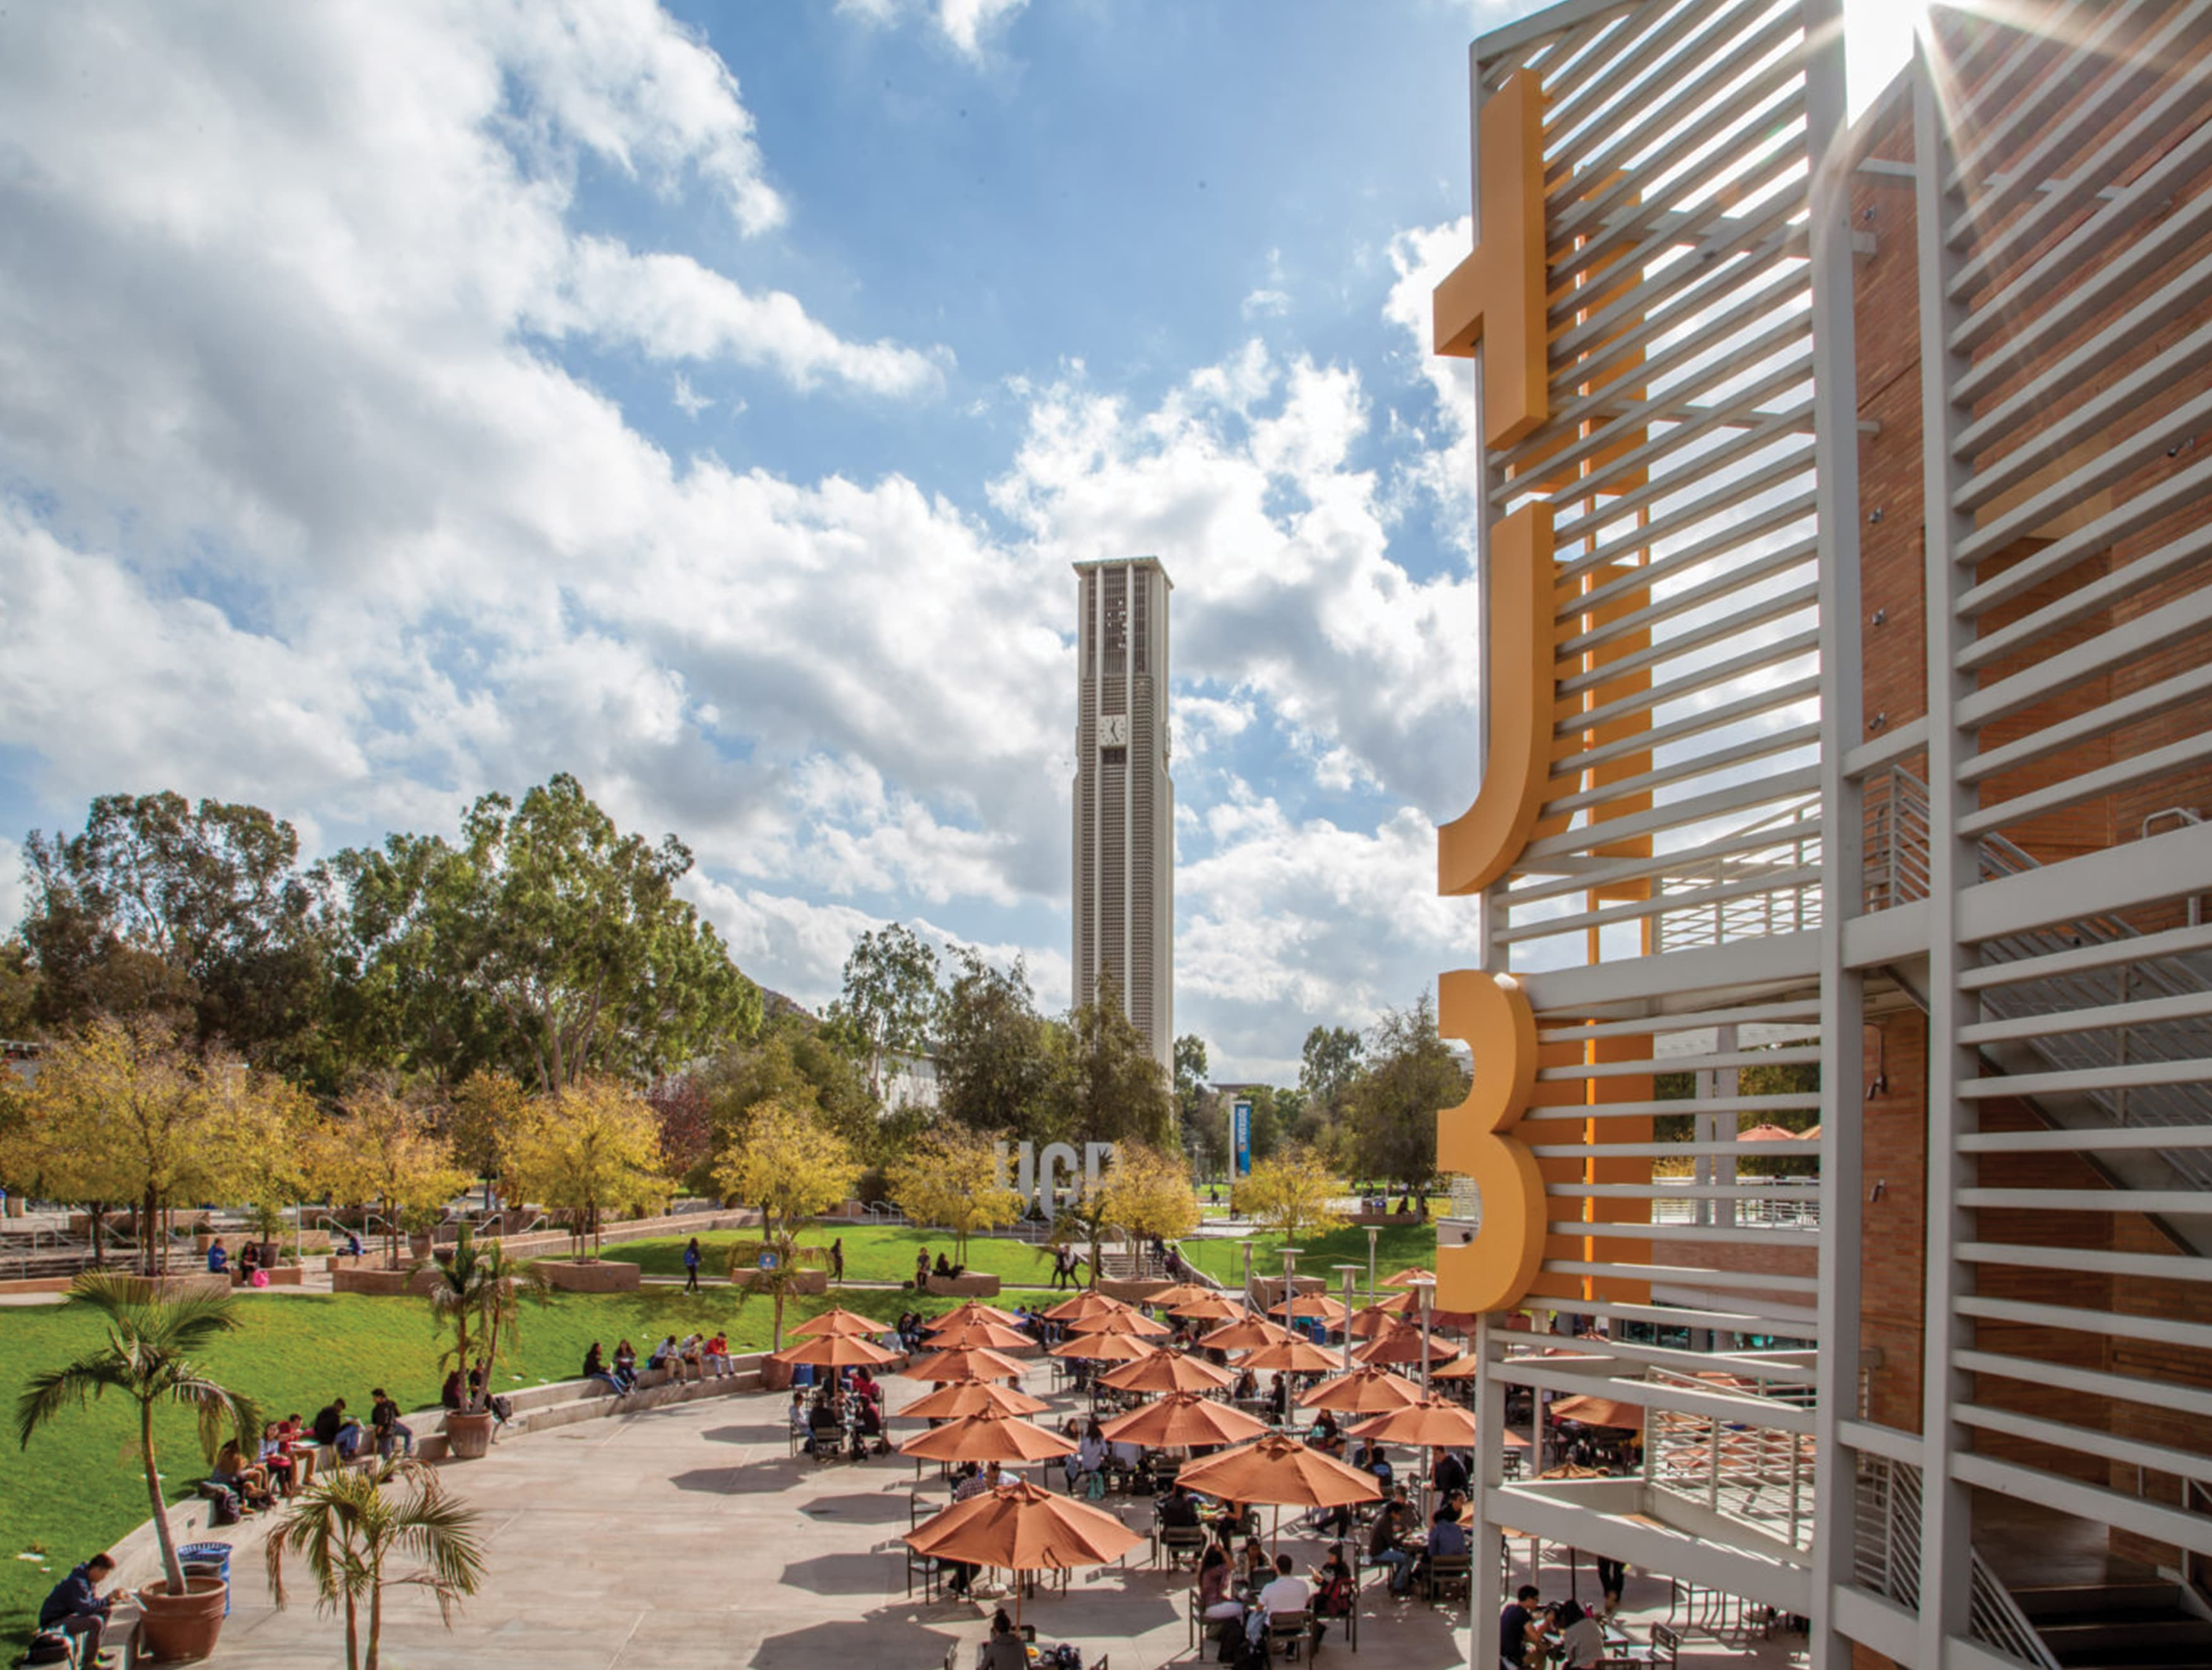 A plaza featuring signage and open-air seating on the campus of UCR.